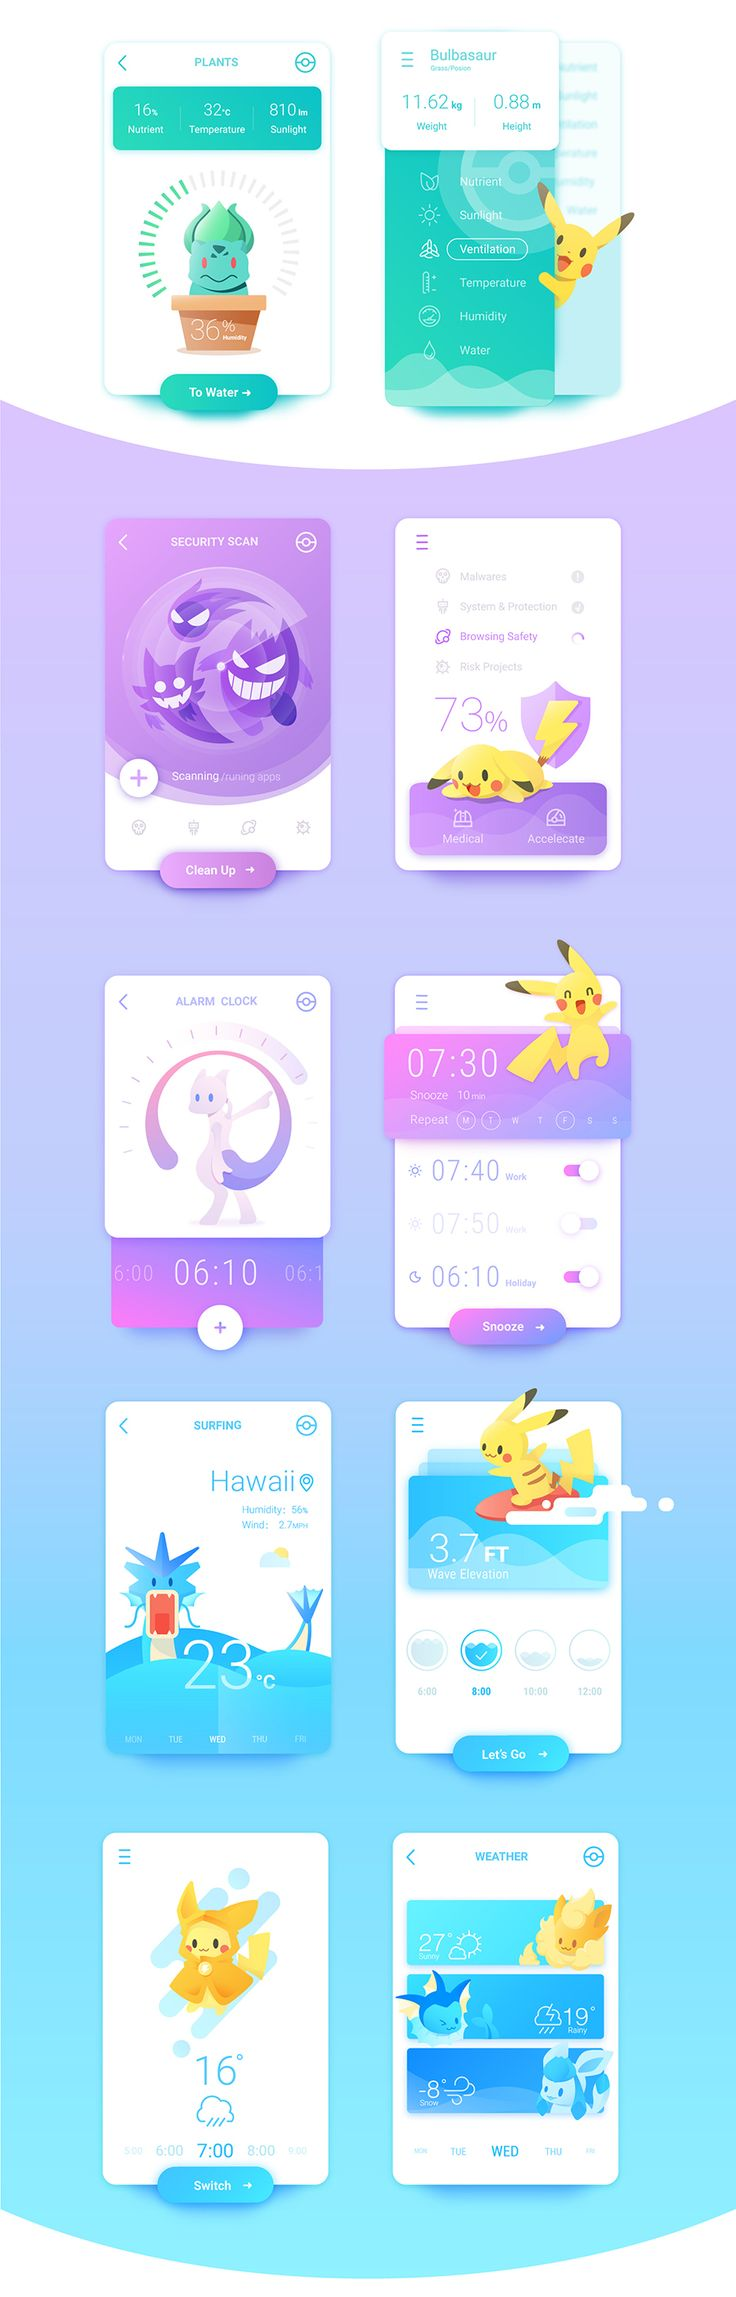 """Some association between Pokemons and Interfaces. Hope you like it bros! Press """"L"""" on your keyboard if you do!"""